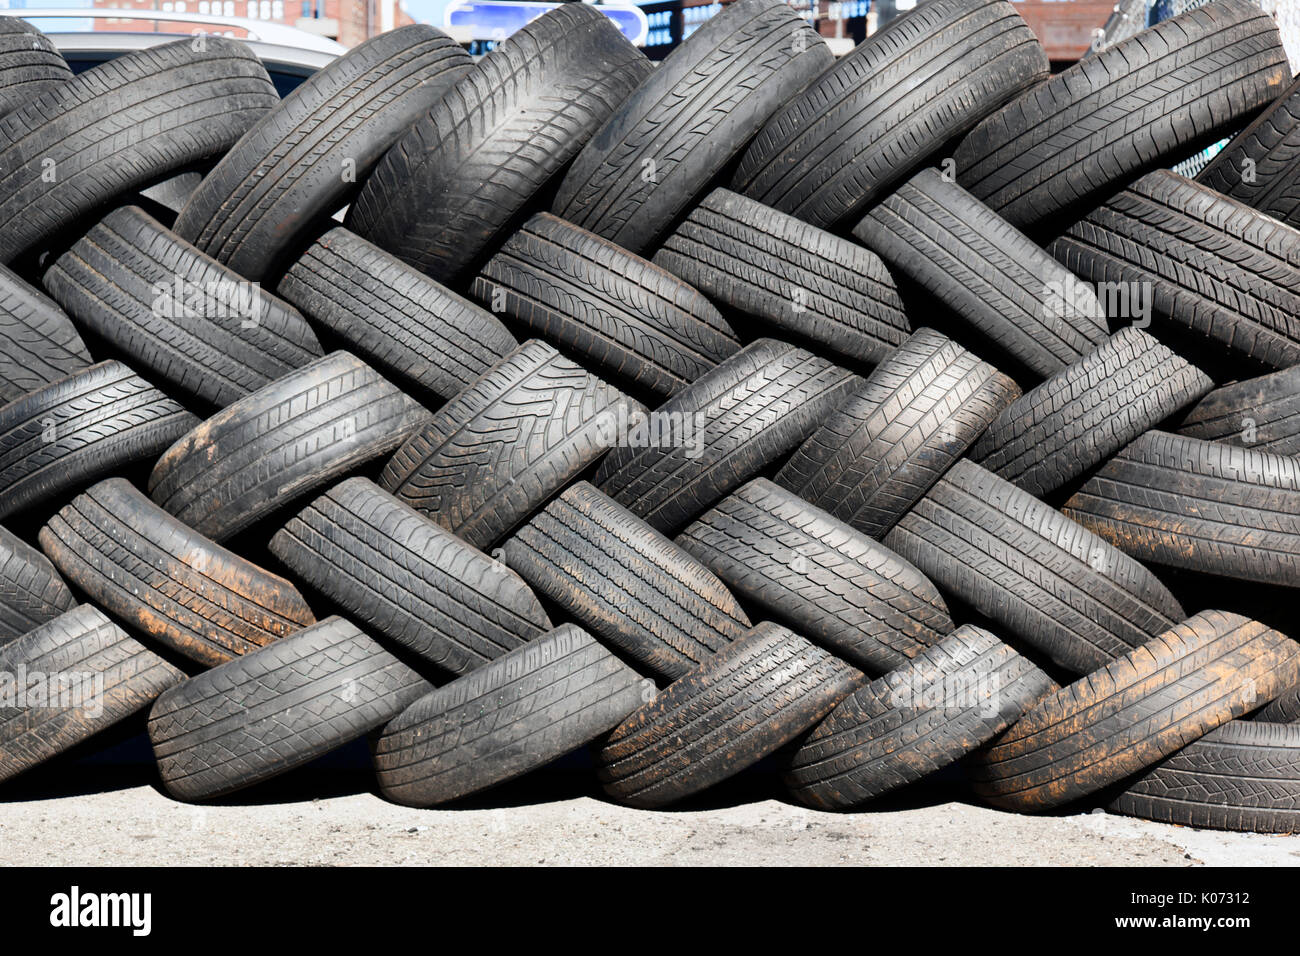 Used Car tires in a junk yard Stock Photo: 155049358 - Alamy